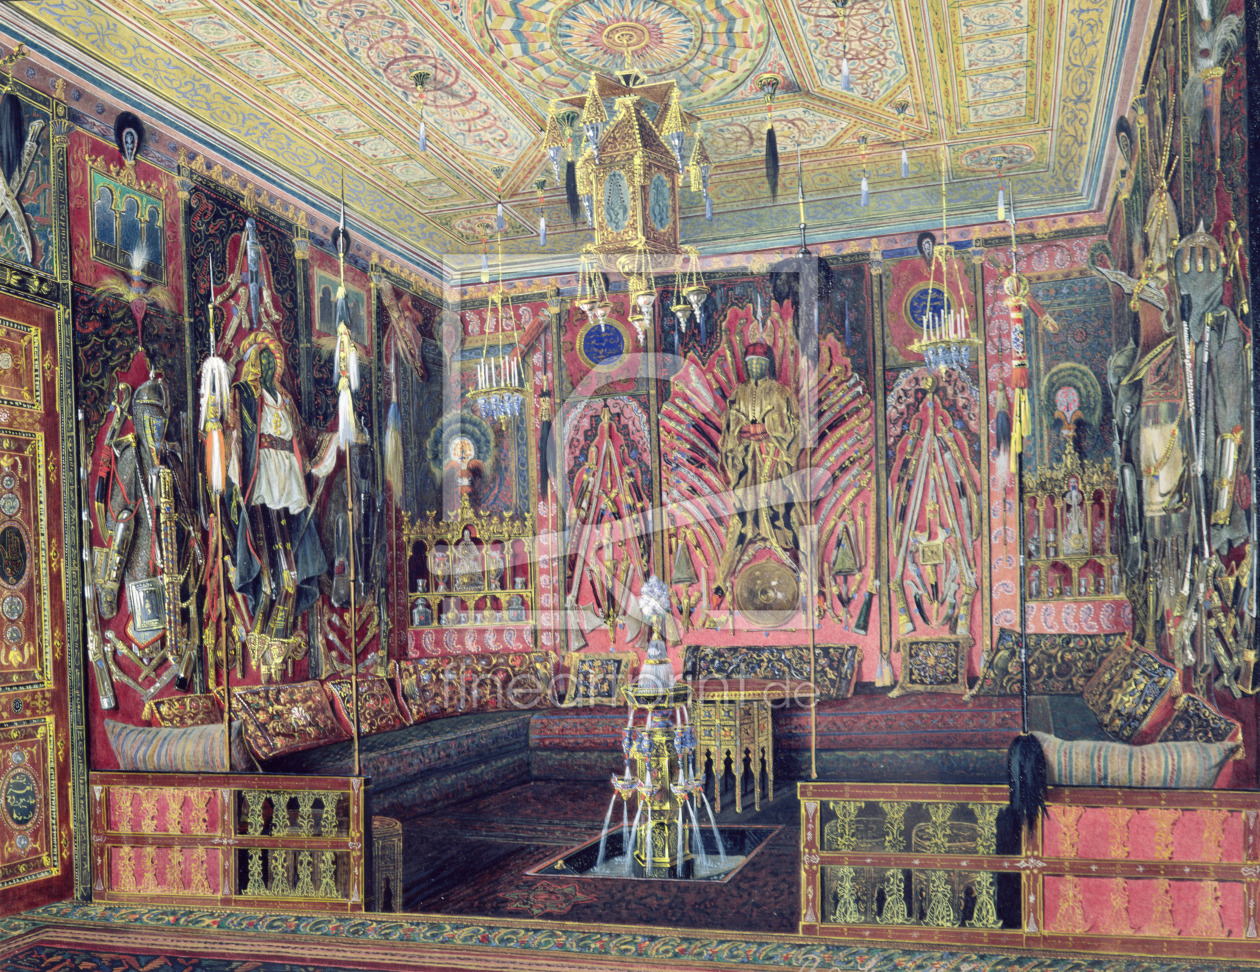 Bild-Nr.: 31002720 The Arabian Hall in the Catherine Palace at Tsarskoye Selo, c.1850 erstellt von